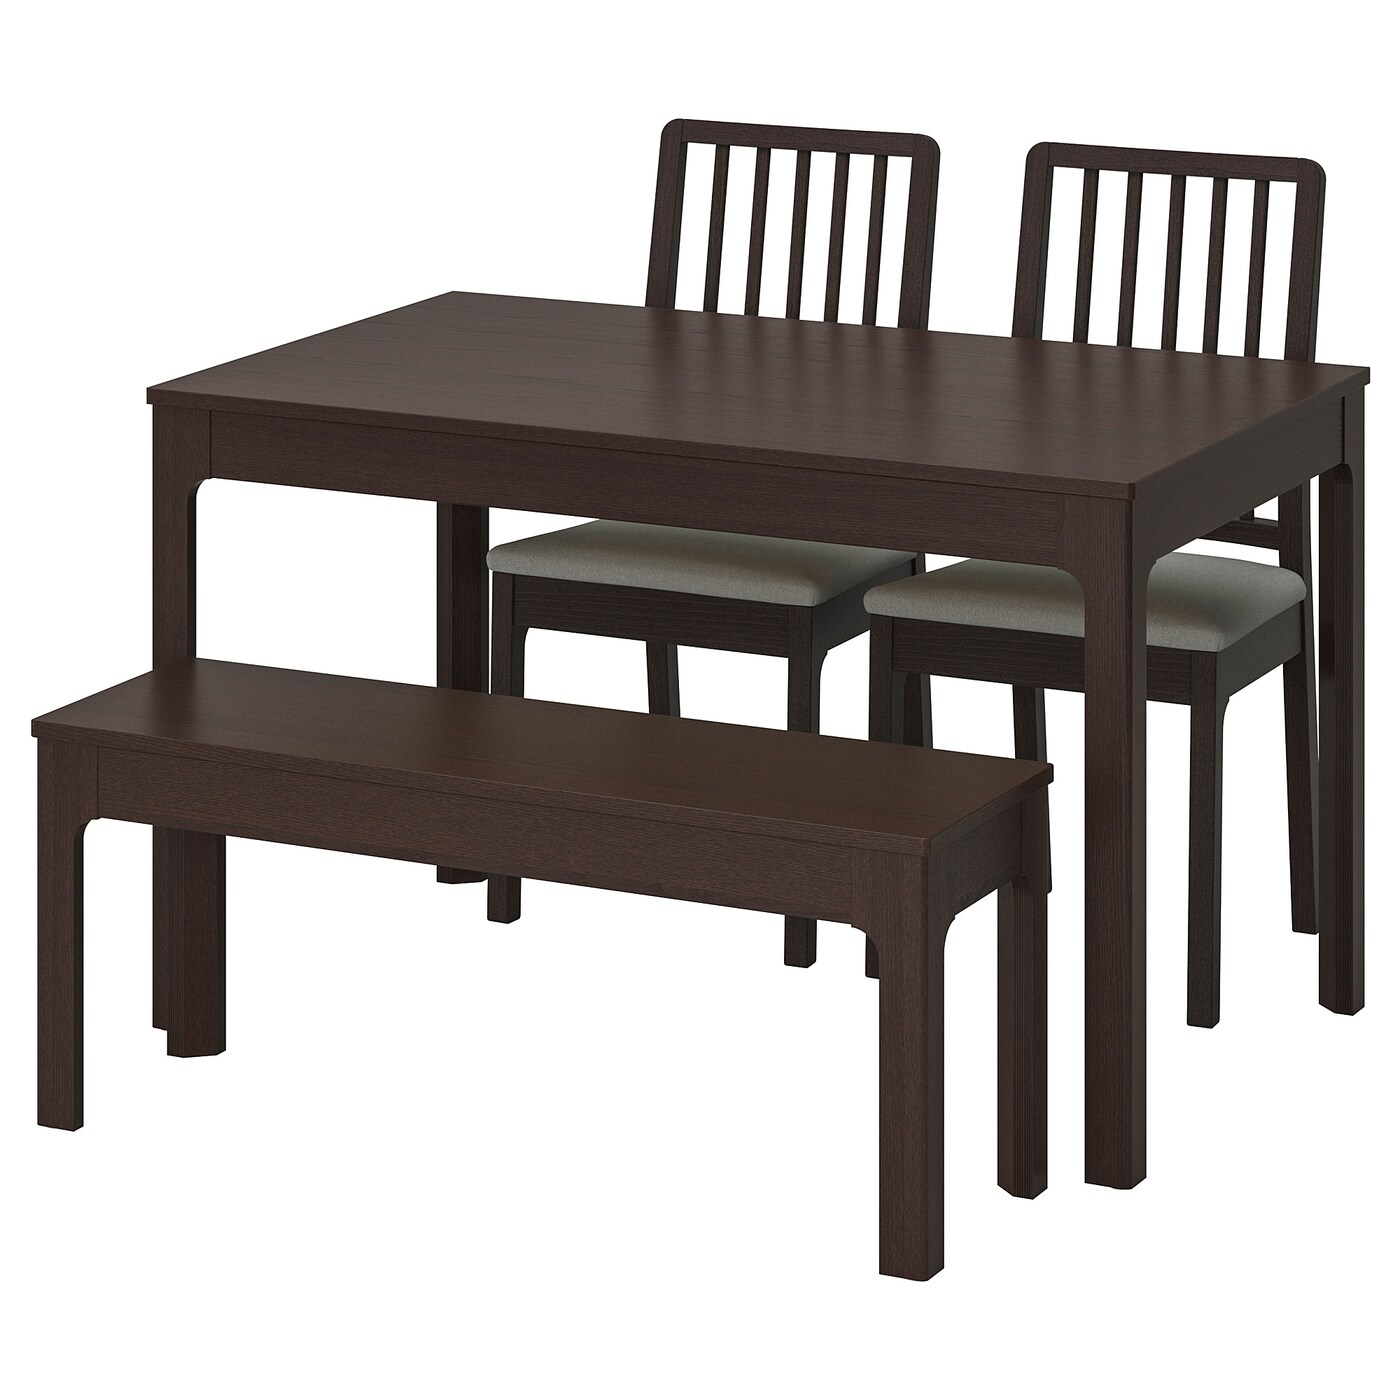 Table With Two Chairs Dining Table Sets And Dining Room Sets Ikea